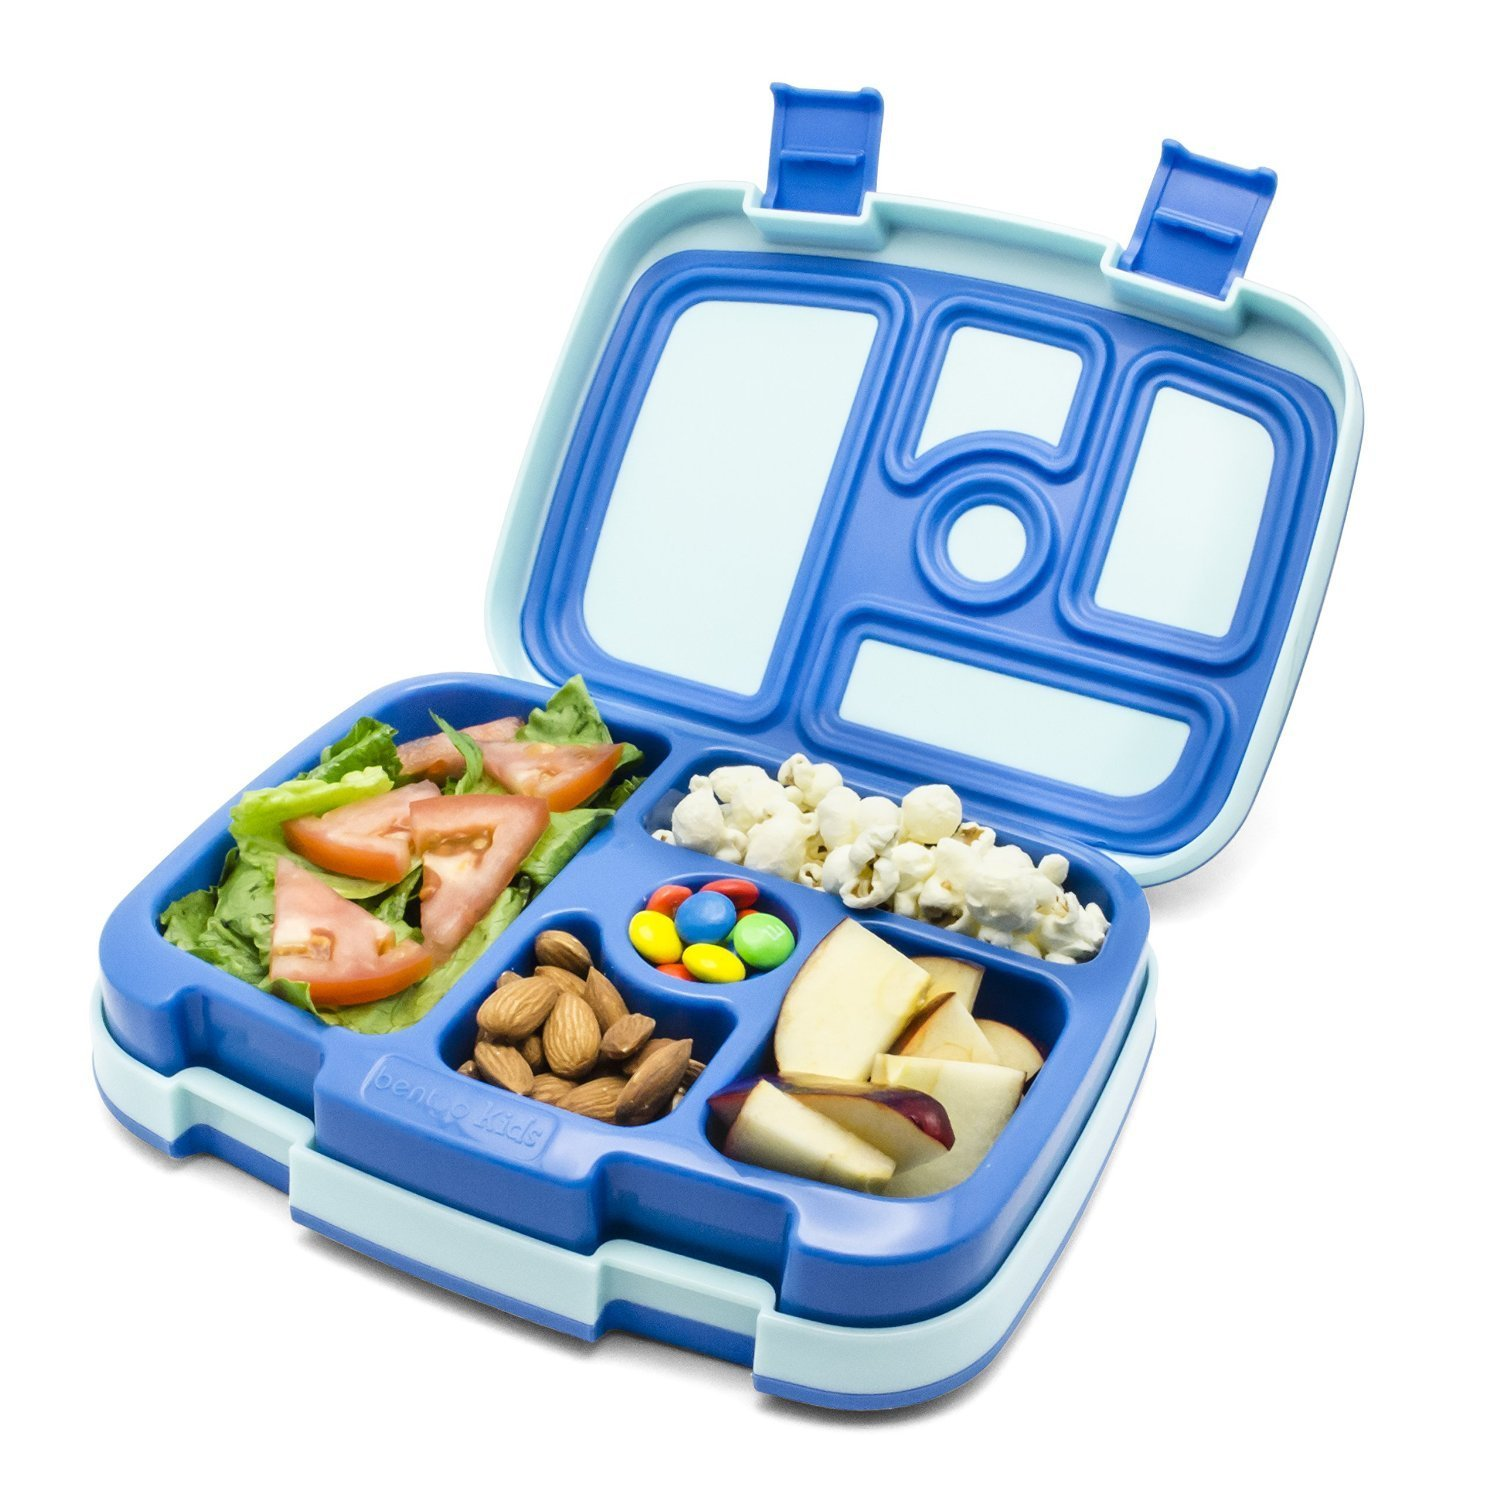 Leakproof Bento Box